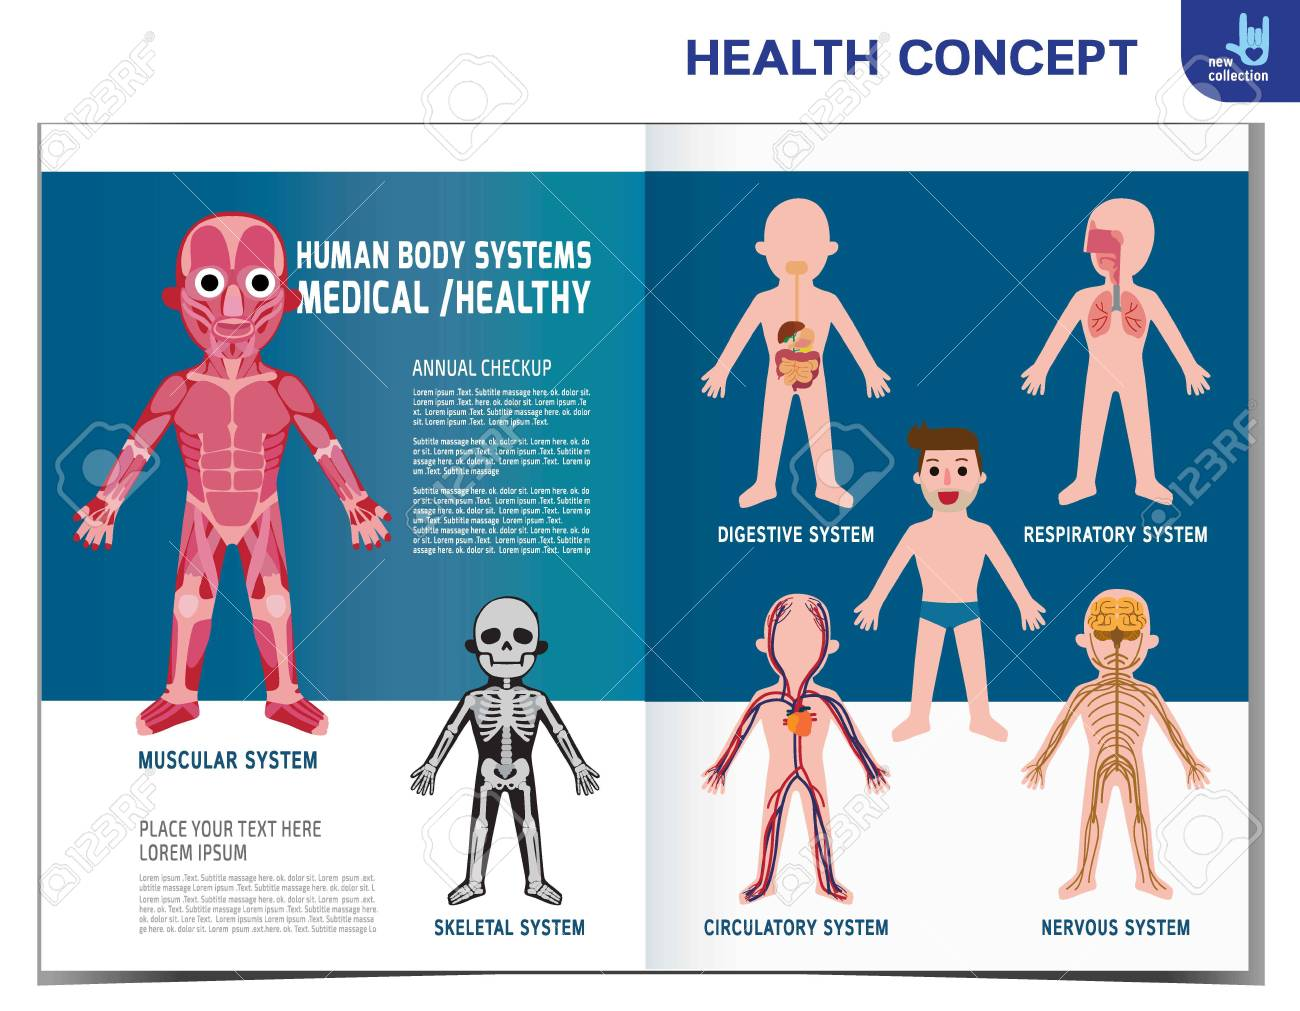 Human Body Systems Anatomy Organ Muscular Skeletal Circulatory